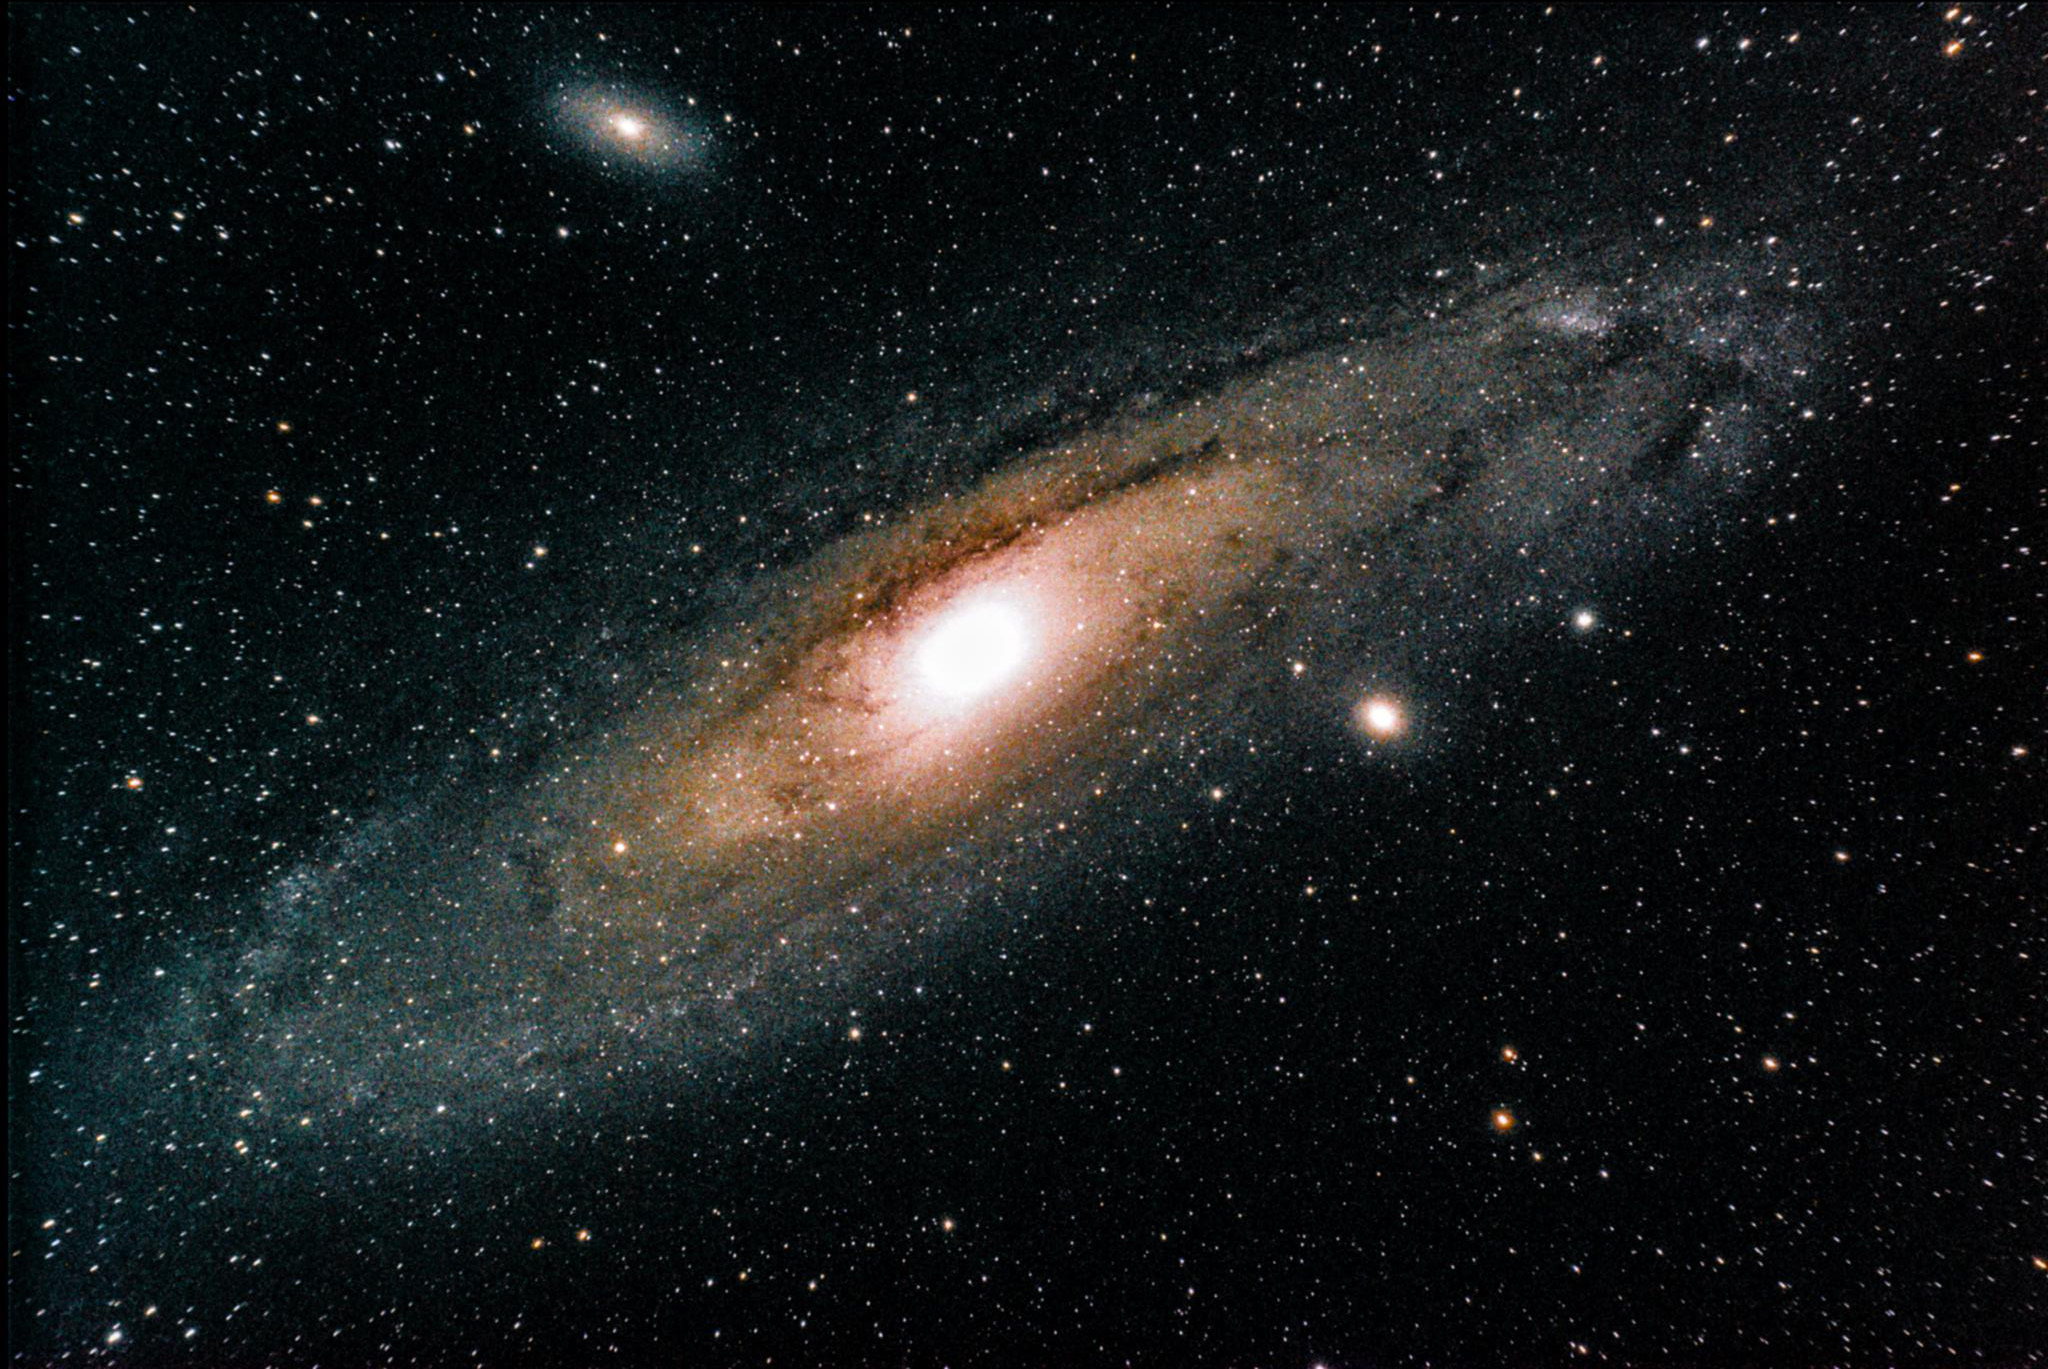 Photo by Paul Owen of M31